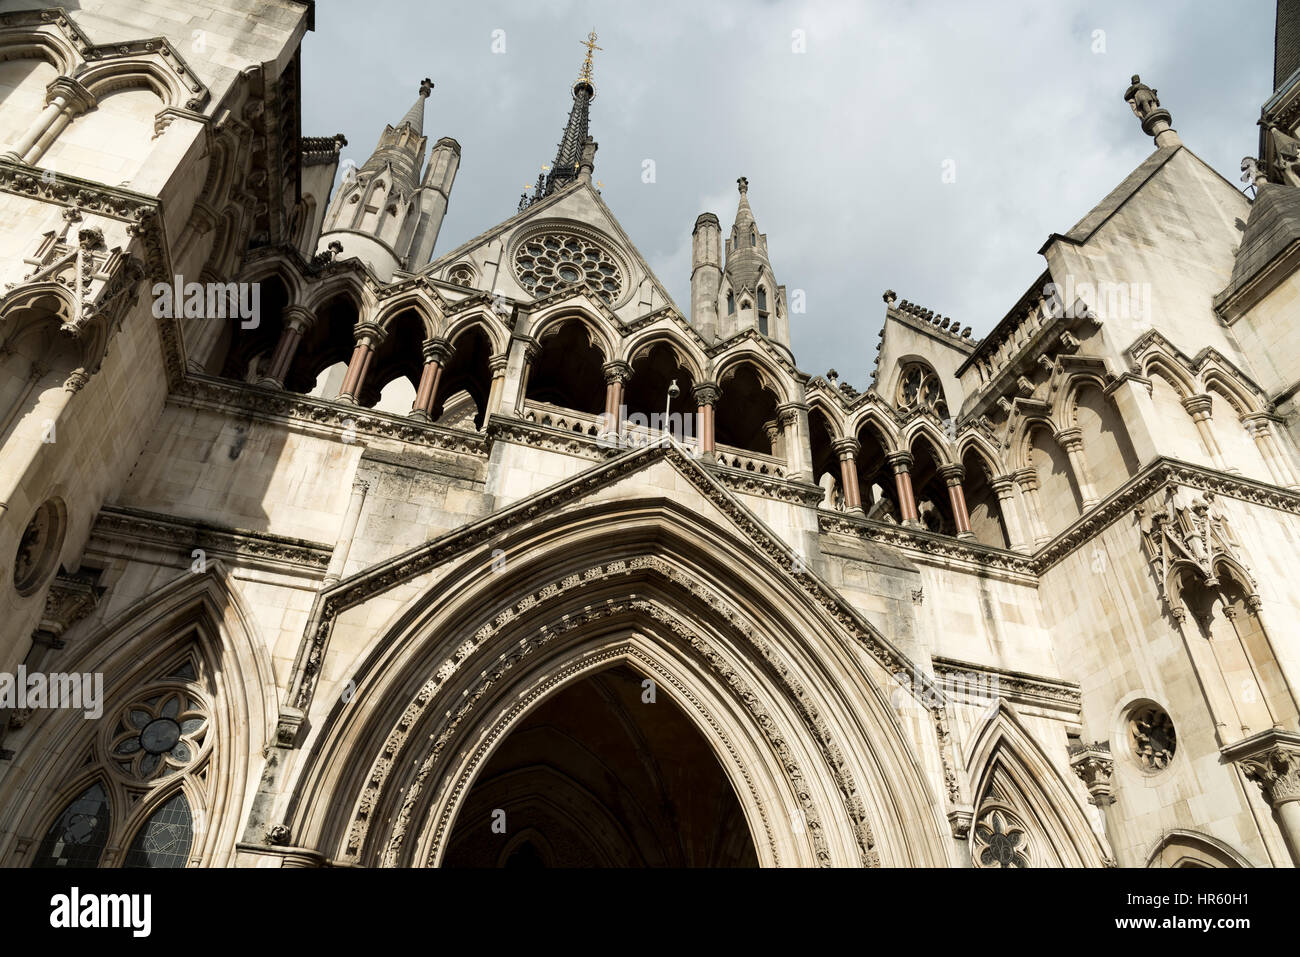 High Court of Justice, London, England, UK - Stock Image